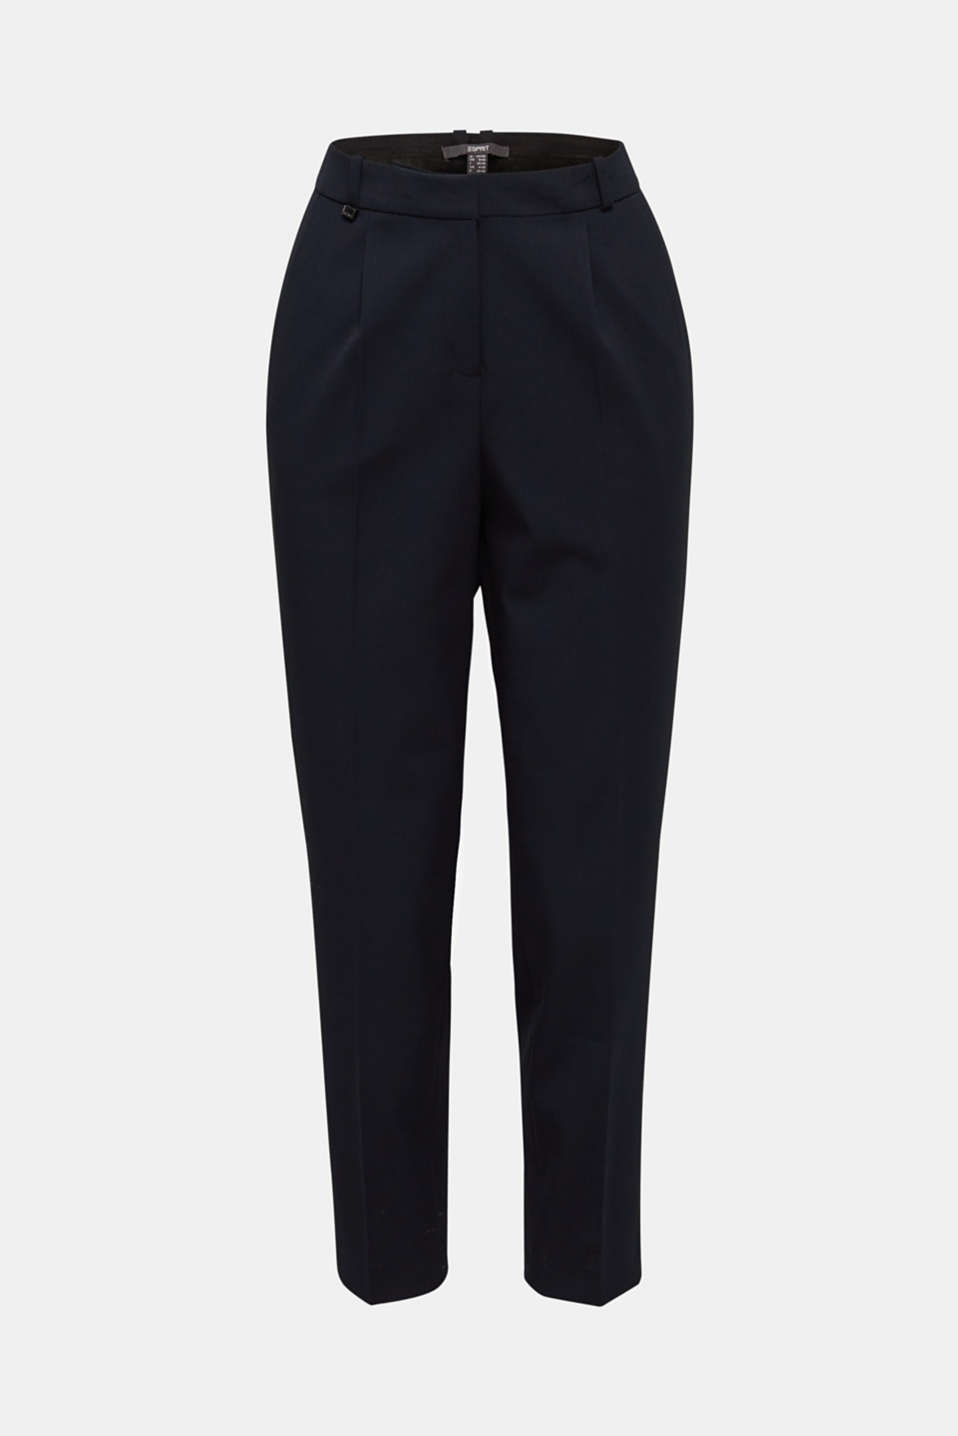 PURE BUSINESS mix + match trousers, NAVY, detail image number 8